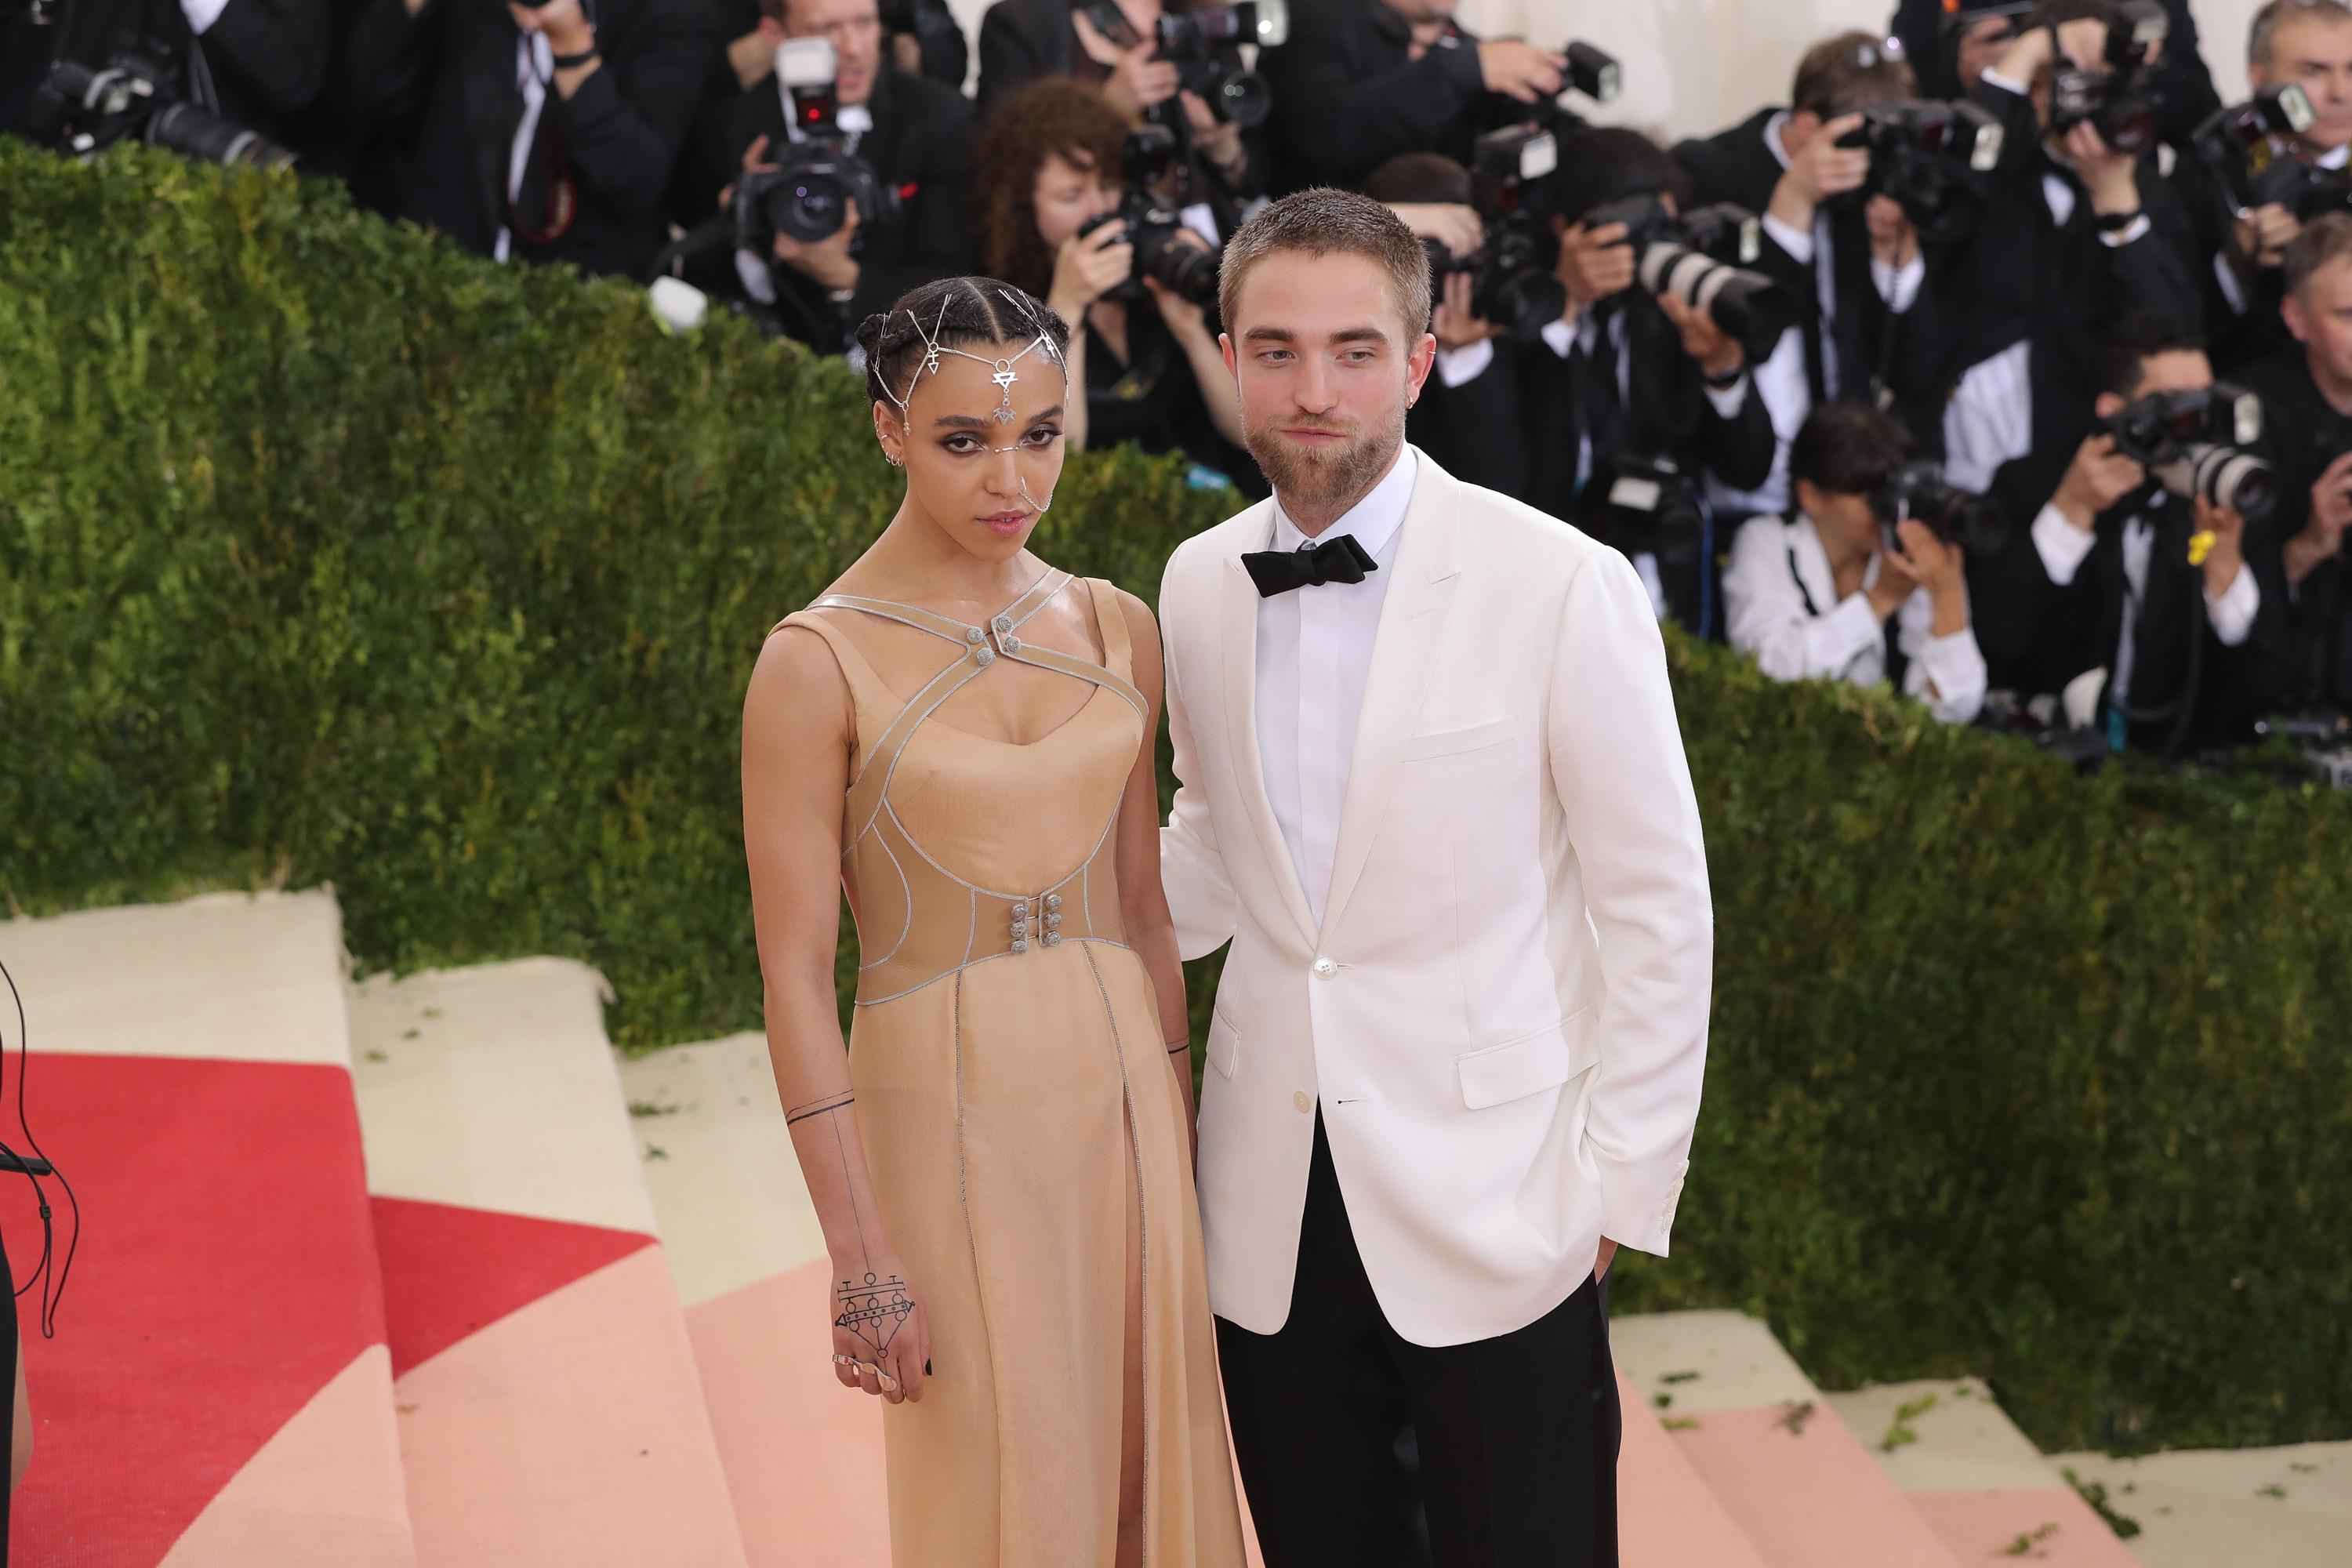 When did fka twigs and robert pattinson started dating